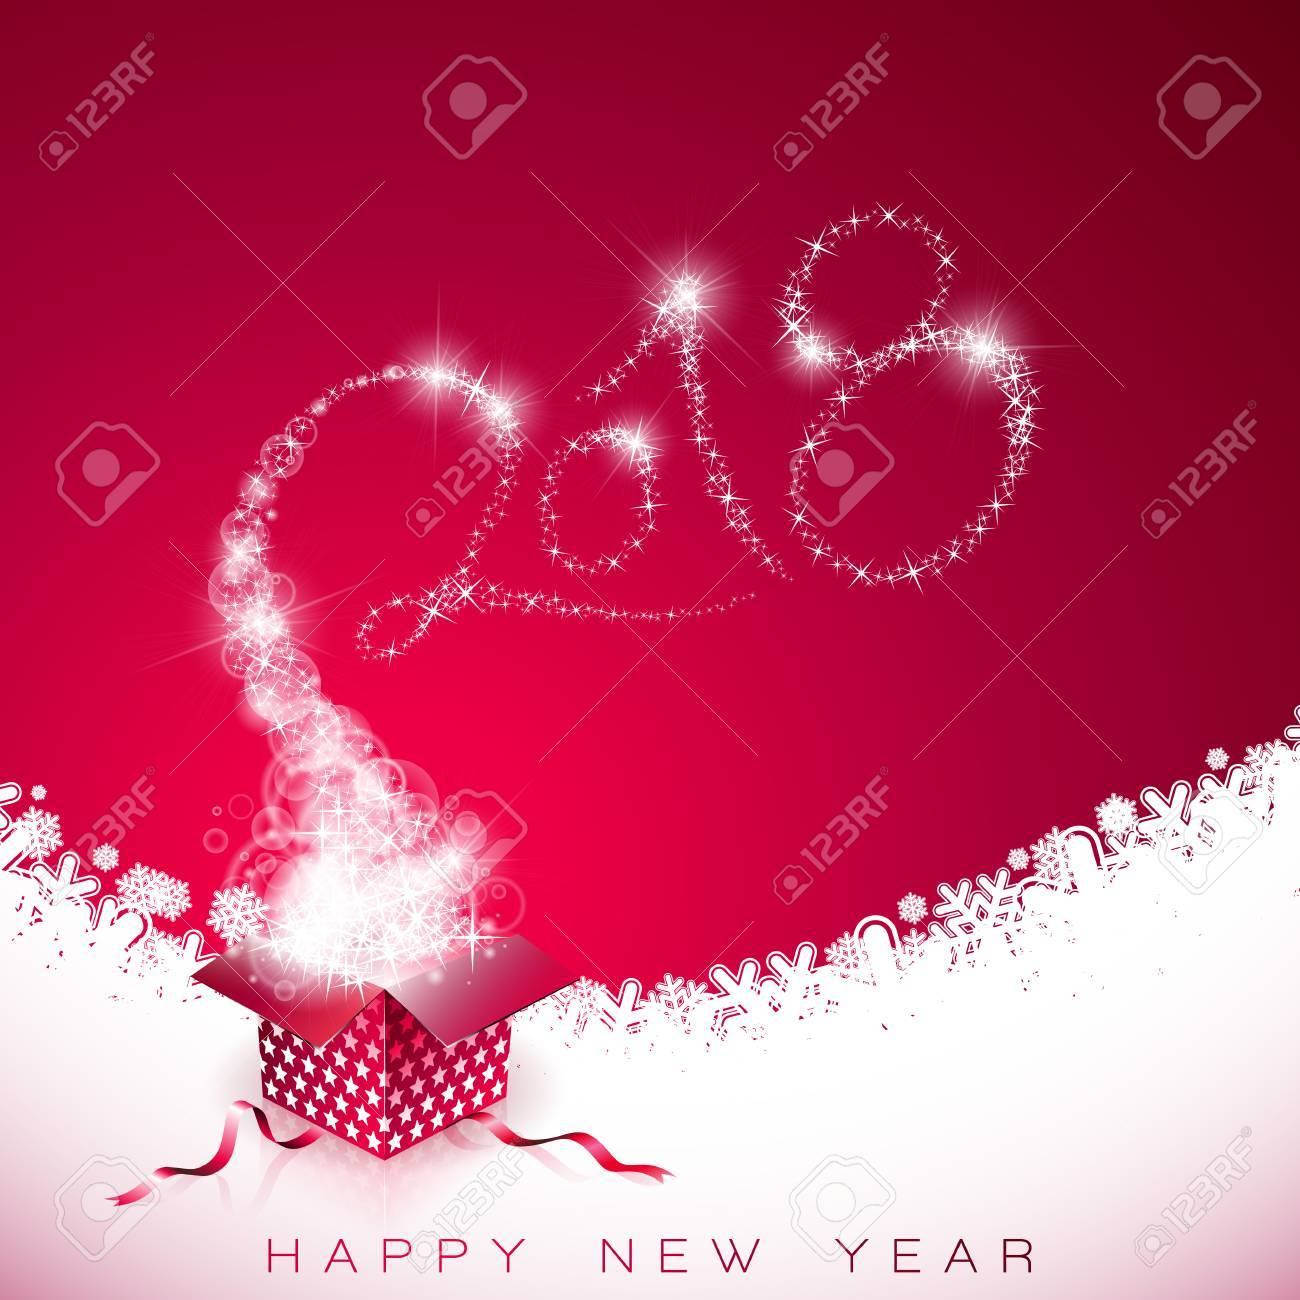 Vector Happy New Year 2018 Illustration on Red Background with Gift Box and Typography Design - 88394901